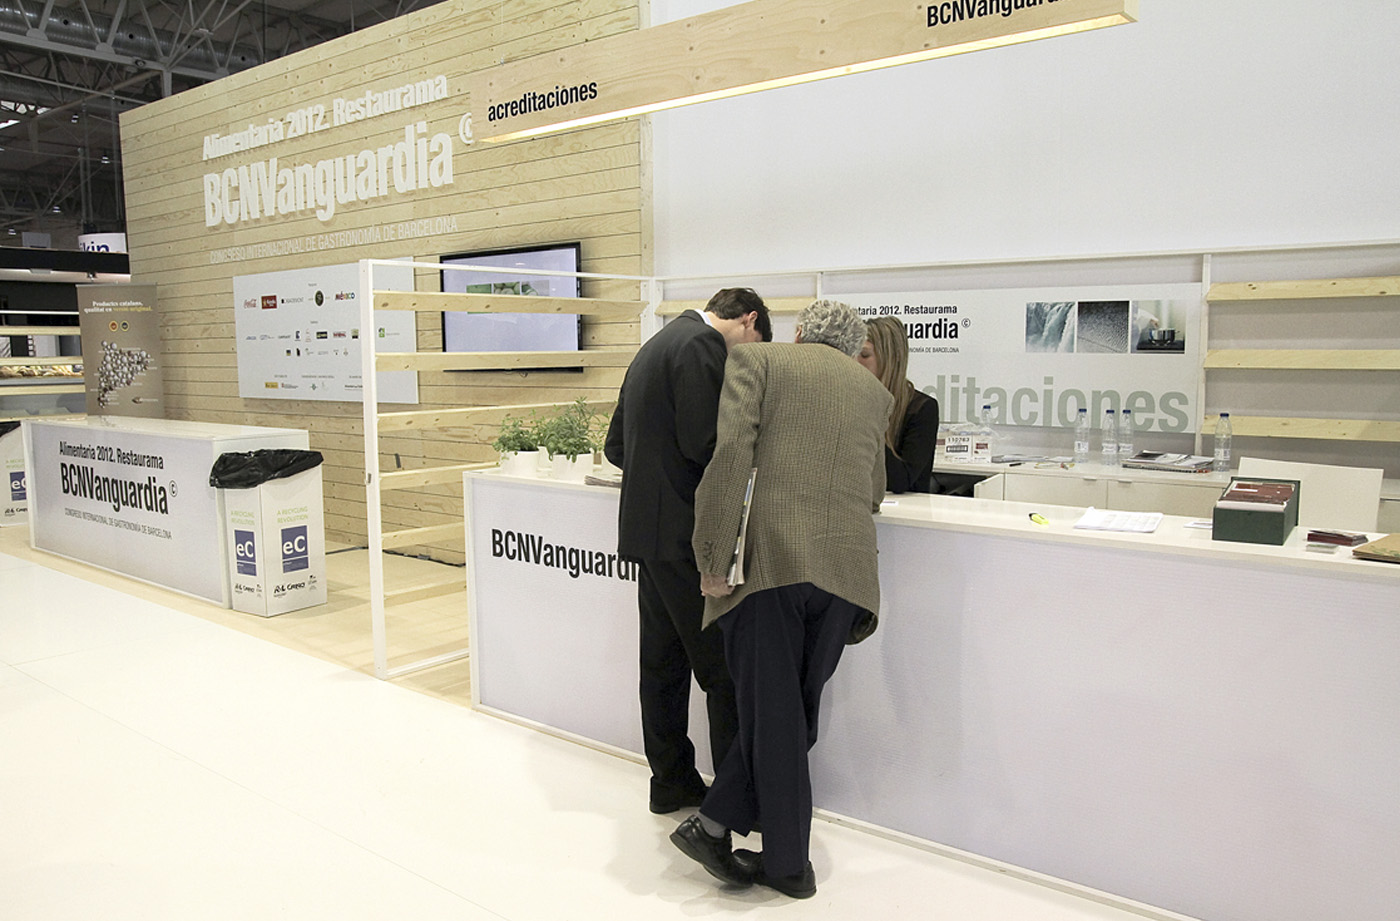 estands-bcn-vanguardia-alimentaria-exhibitions-creartiva